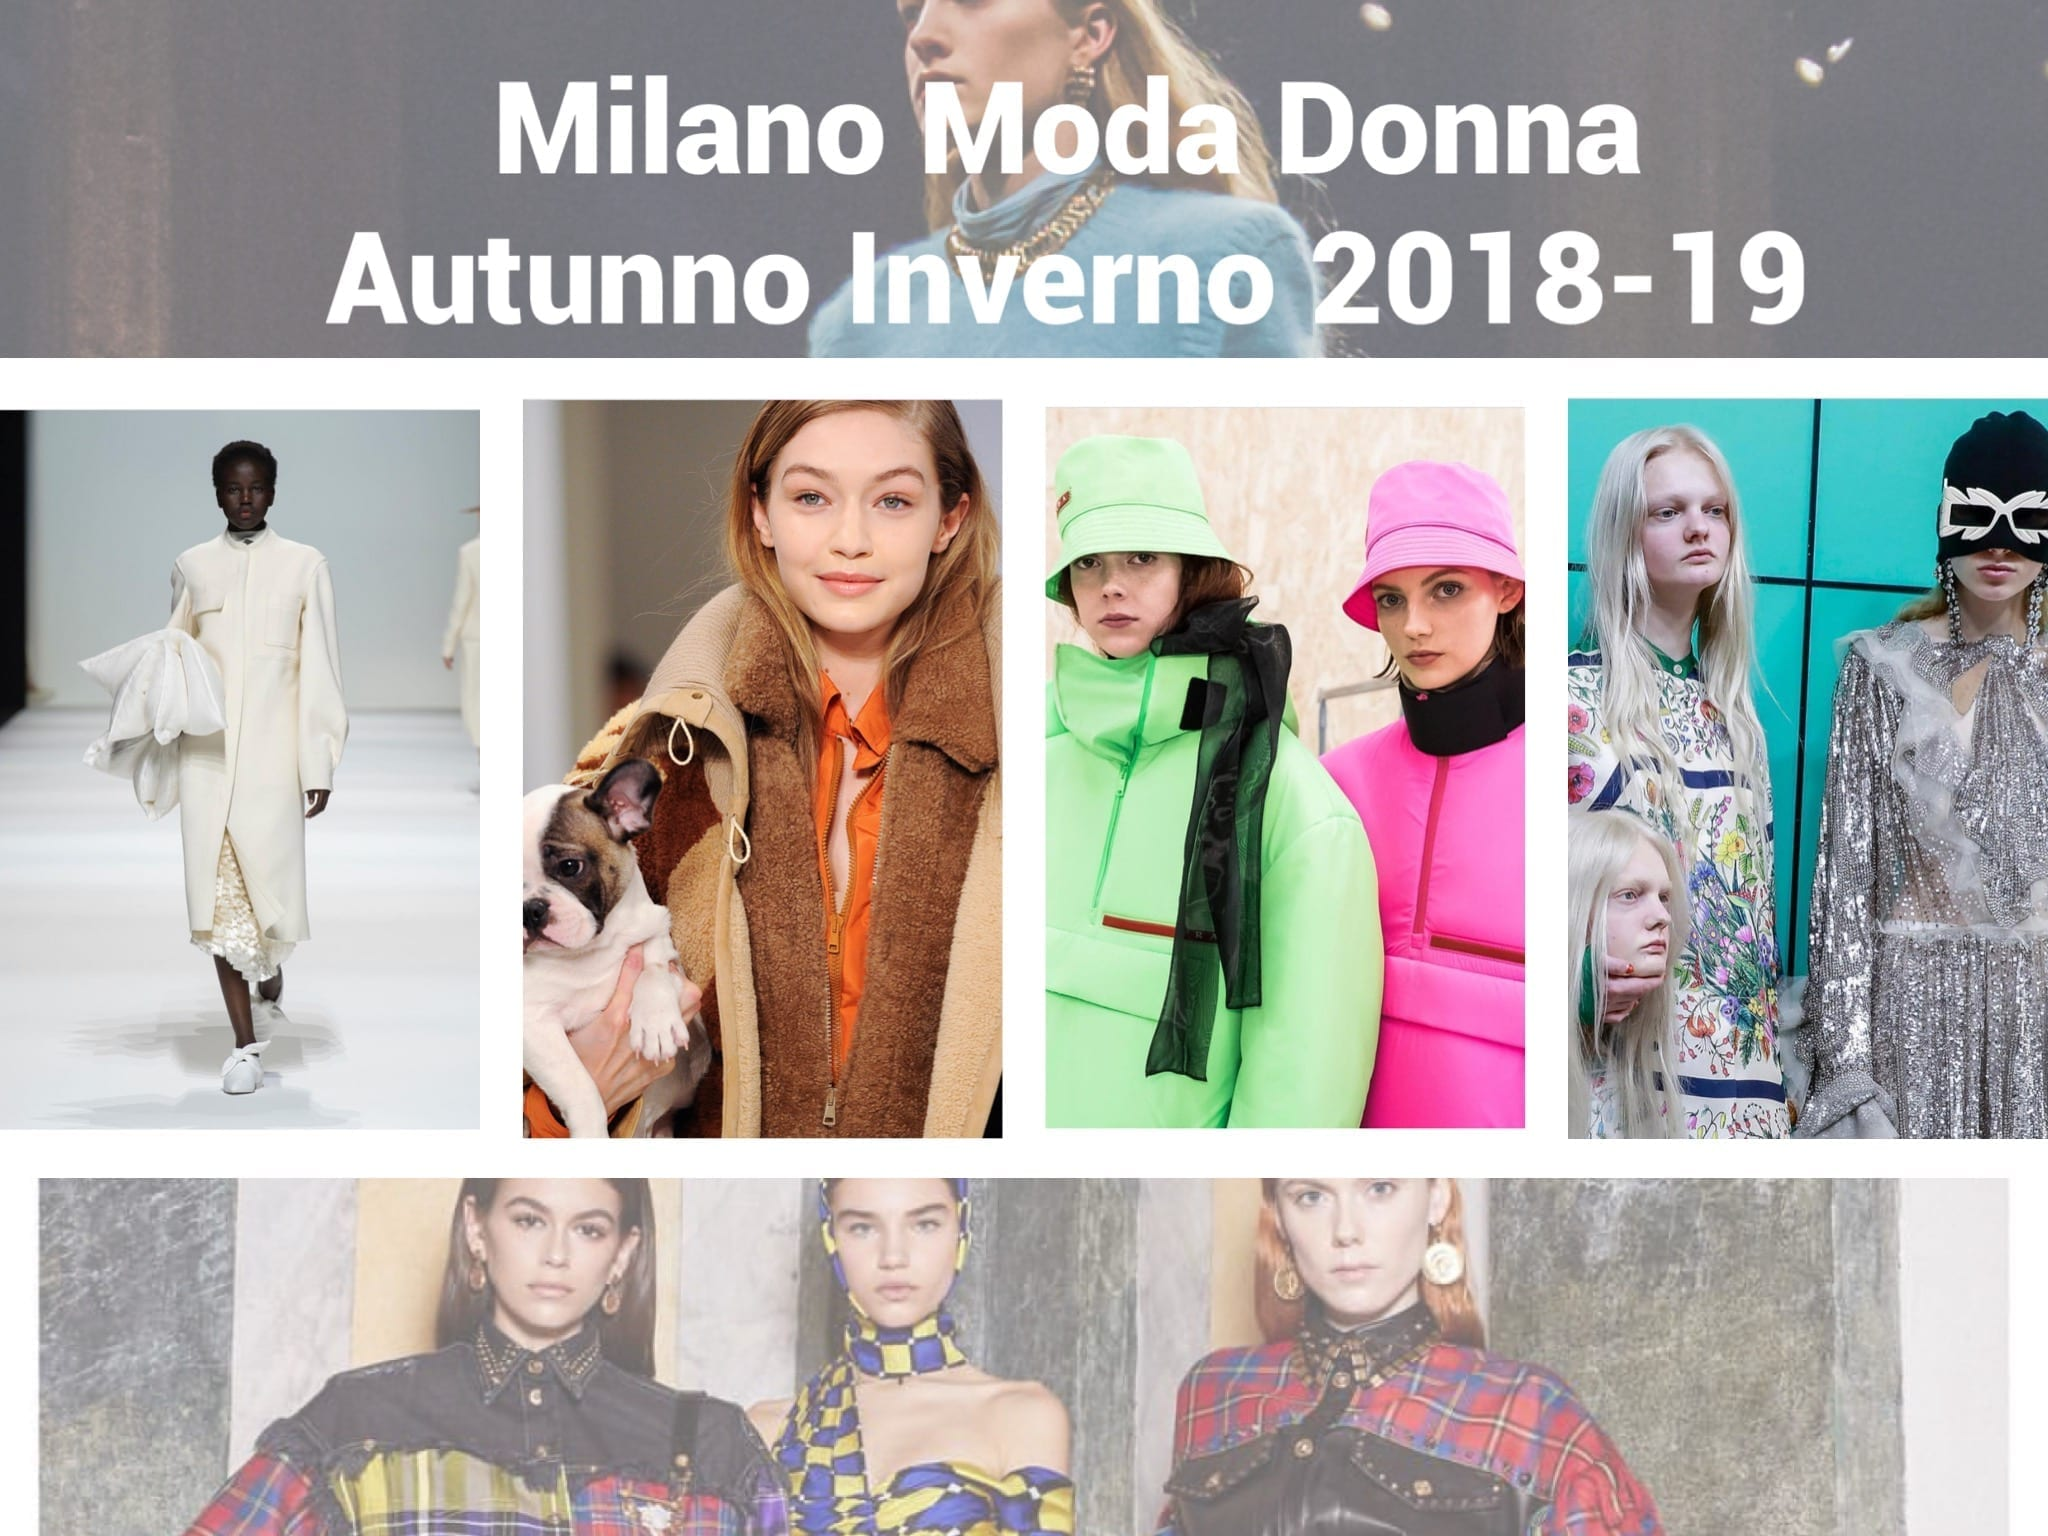 Versace A/I 2018-19, Milano fashion week 2018, theladycracy.it, elisa bellino, fashion blog italia 2018, blogger moda 2018, blogger moda più seguite 2018, tendenze moda autunno inverno 2018-19,